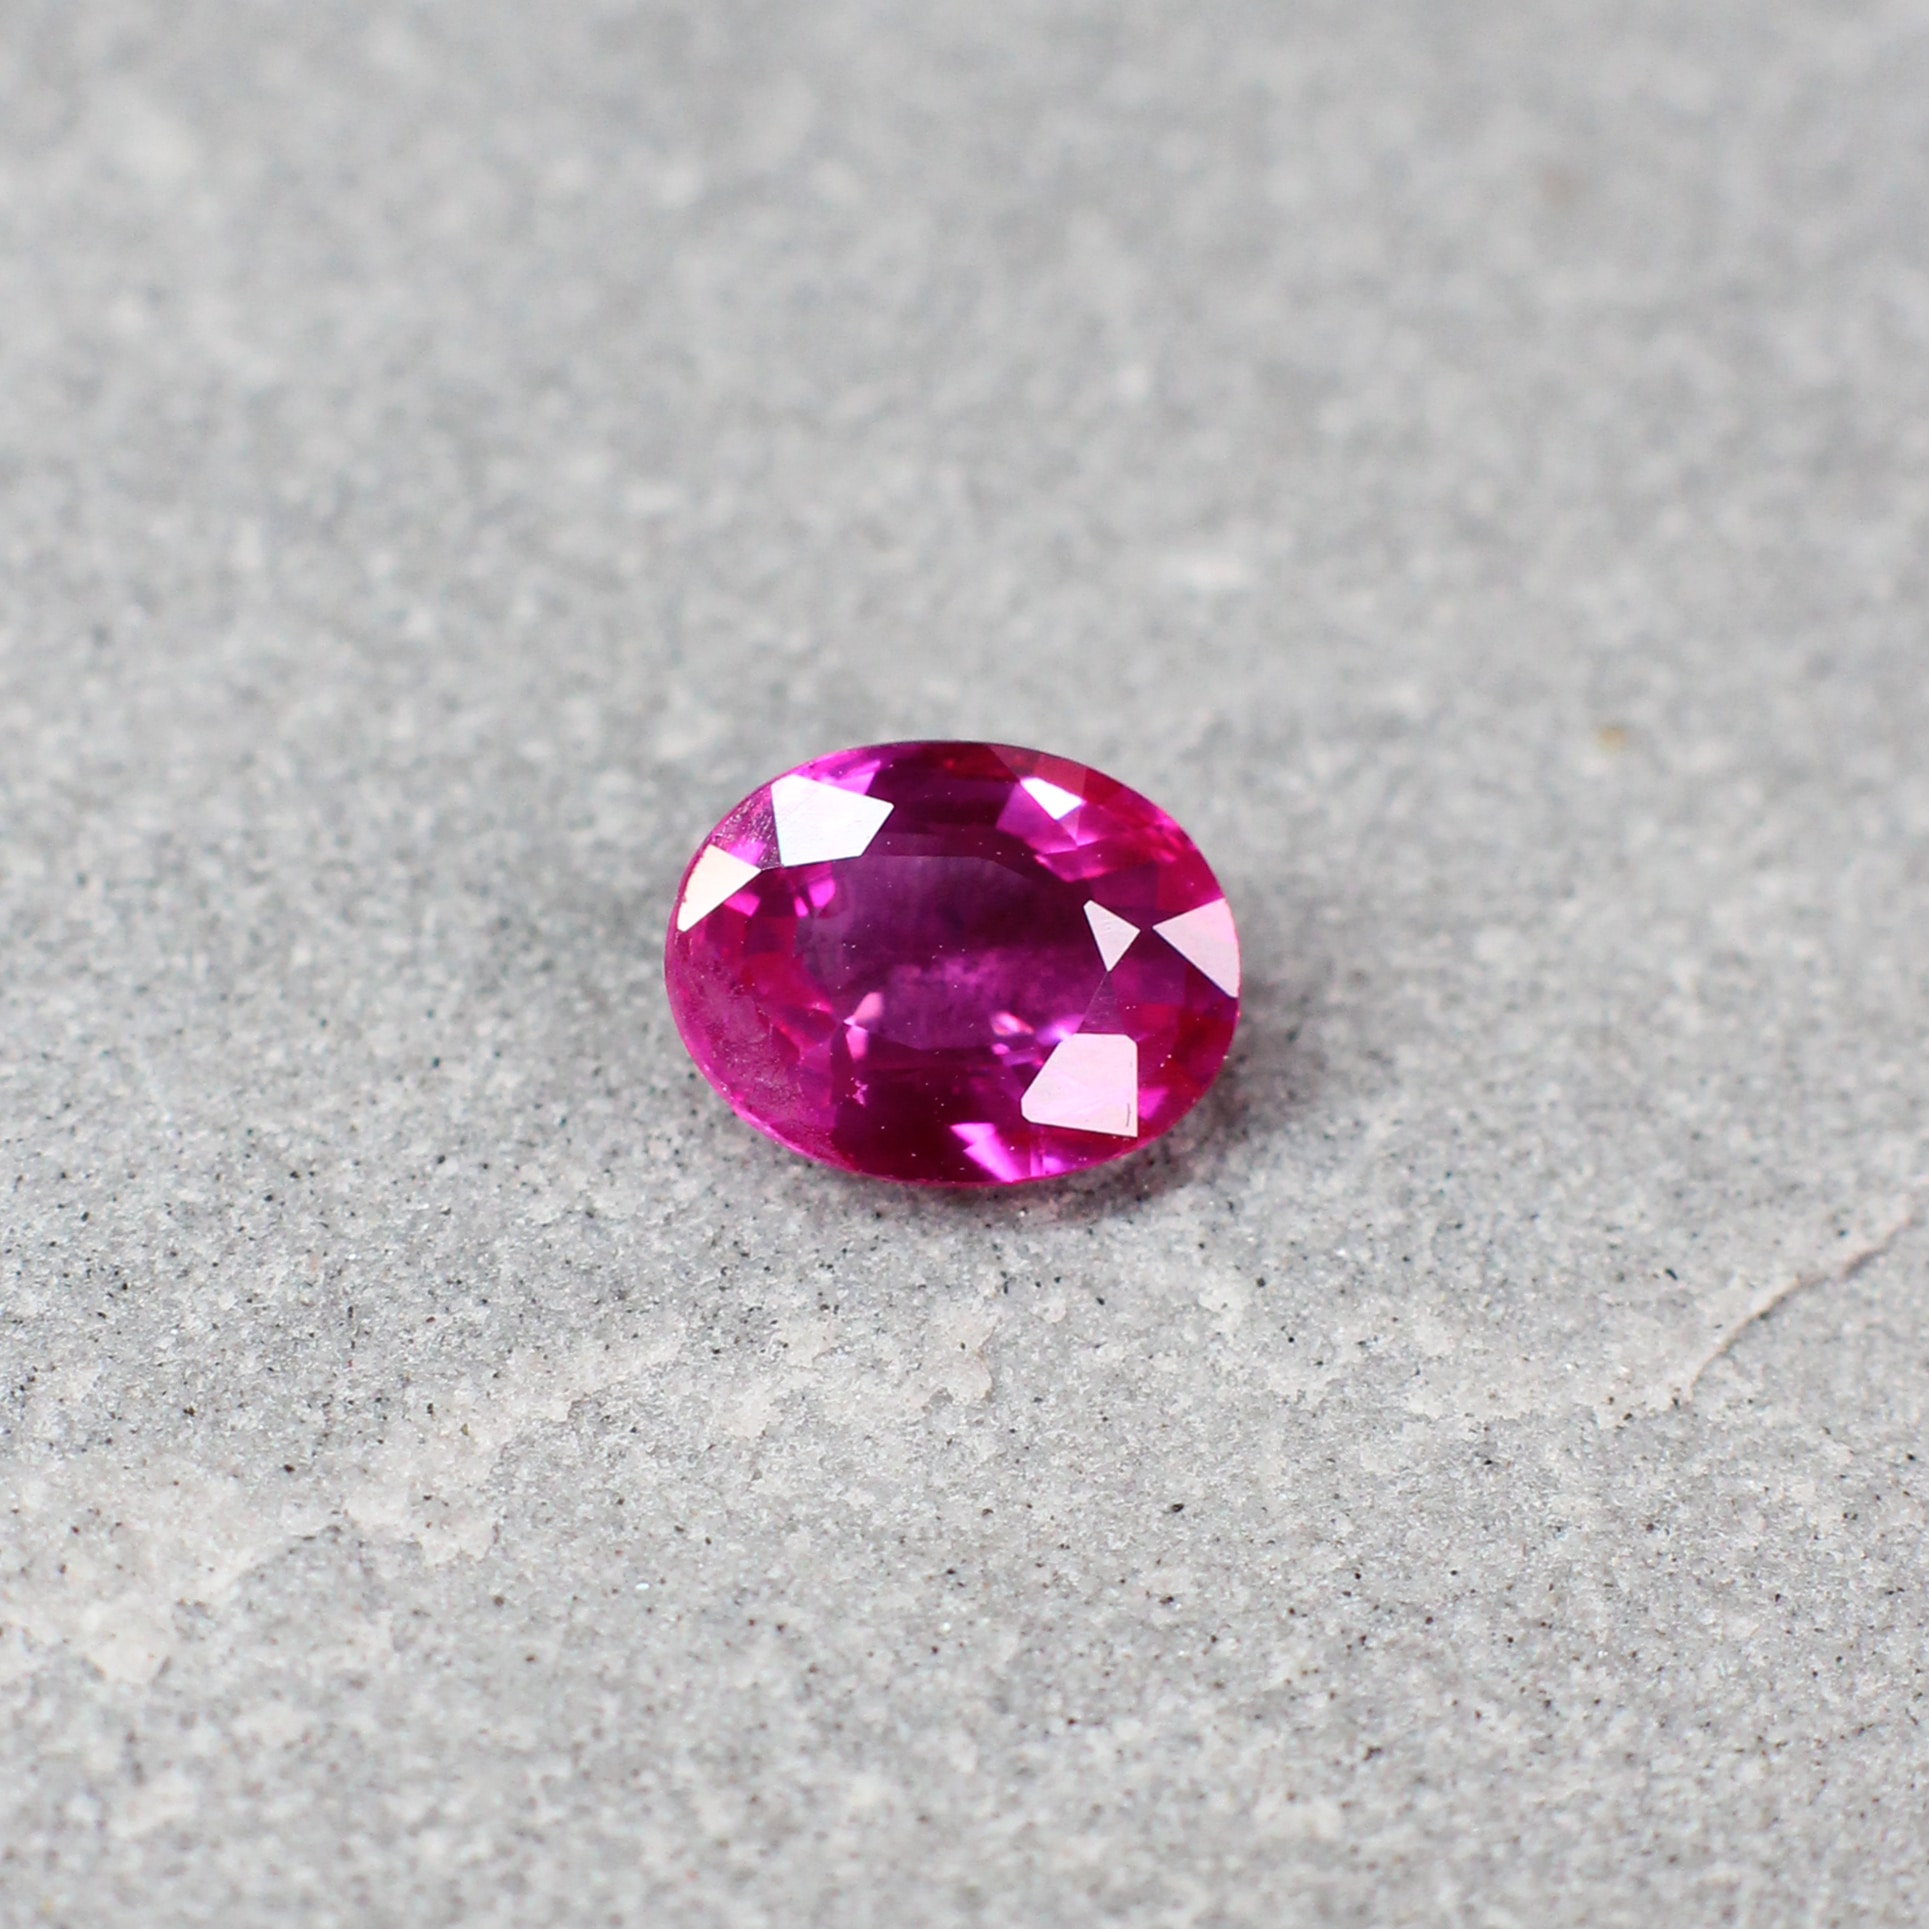 0.86 ct red oval ruby